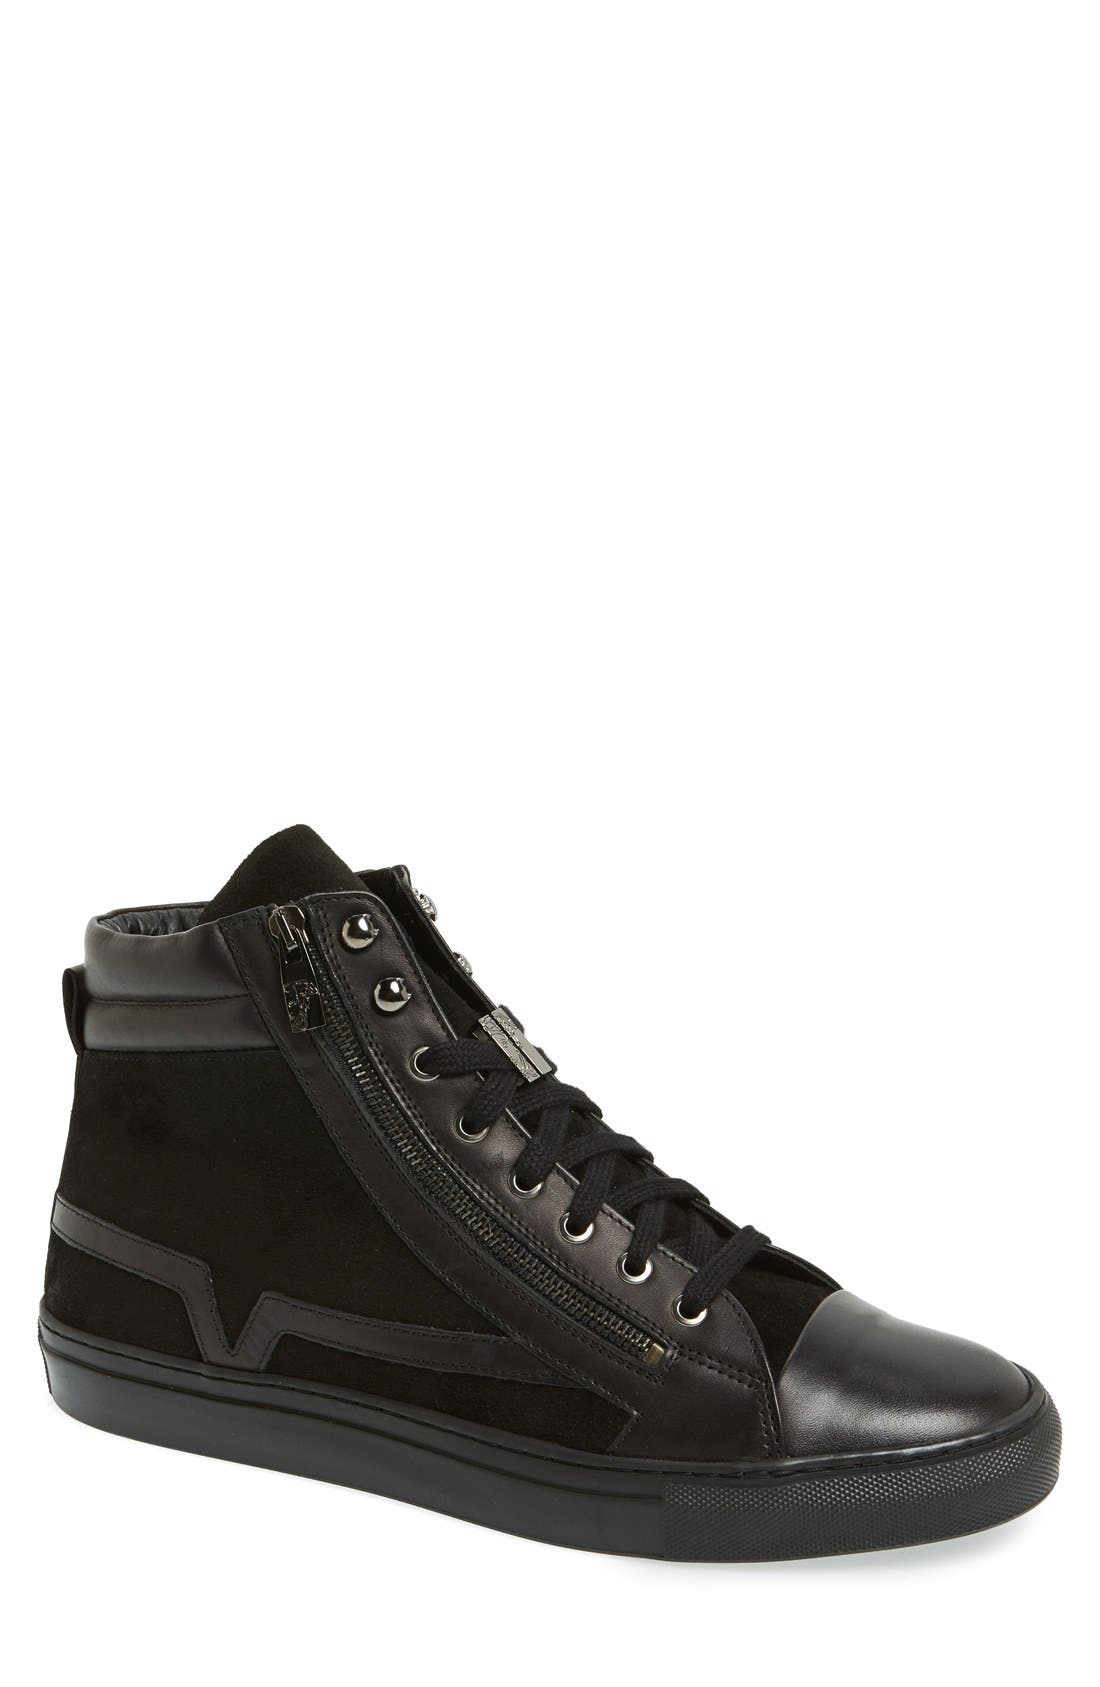 Alternate Image 1 Selected - Versace Collection Suede & Leather High Top Sneaker (Men)